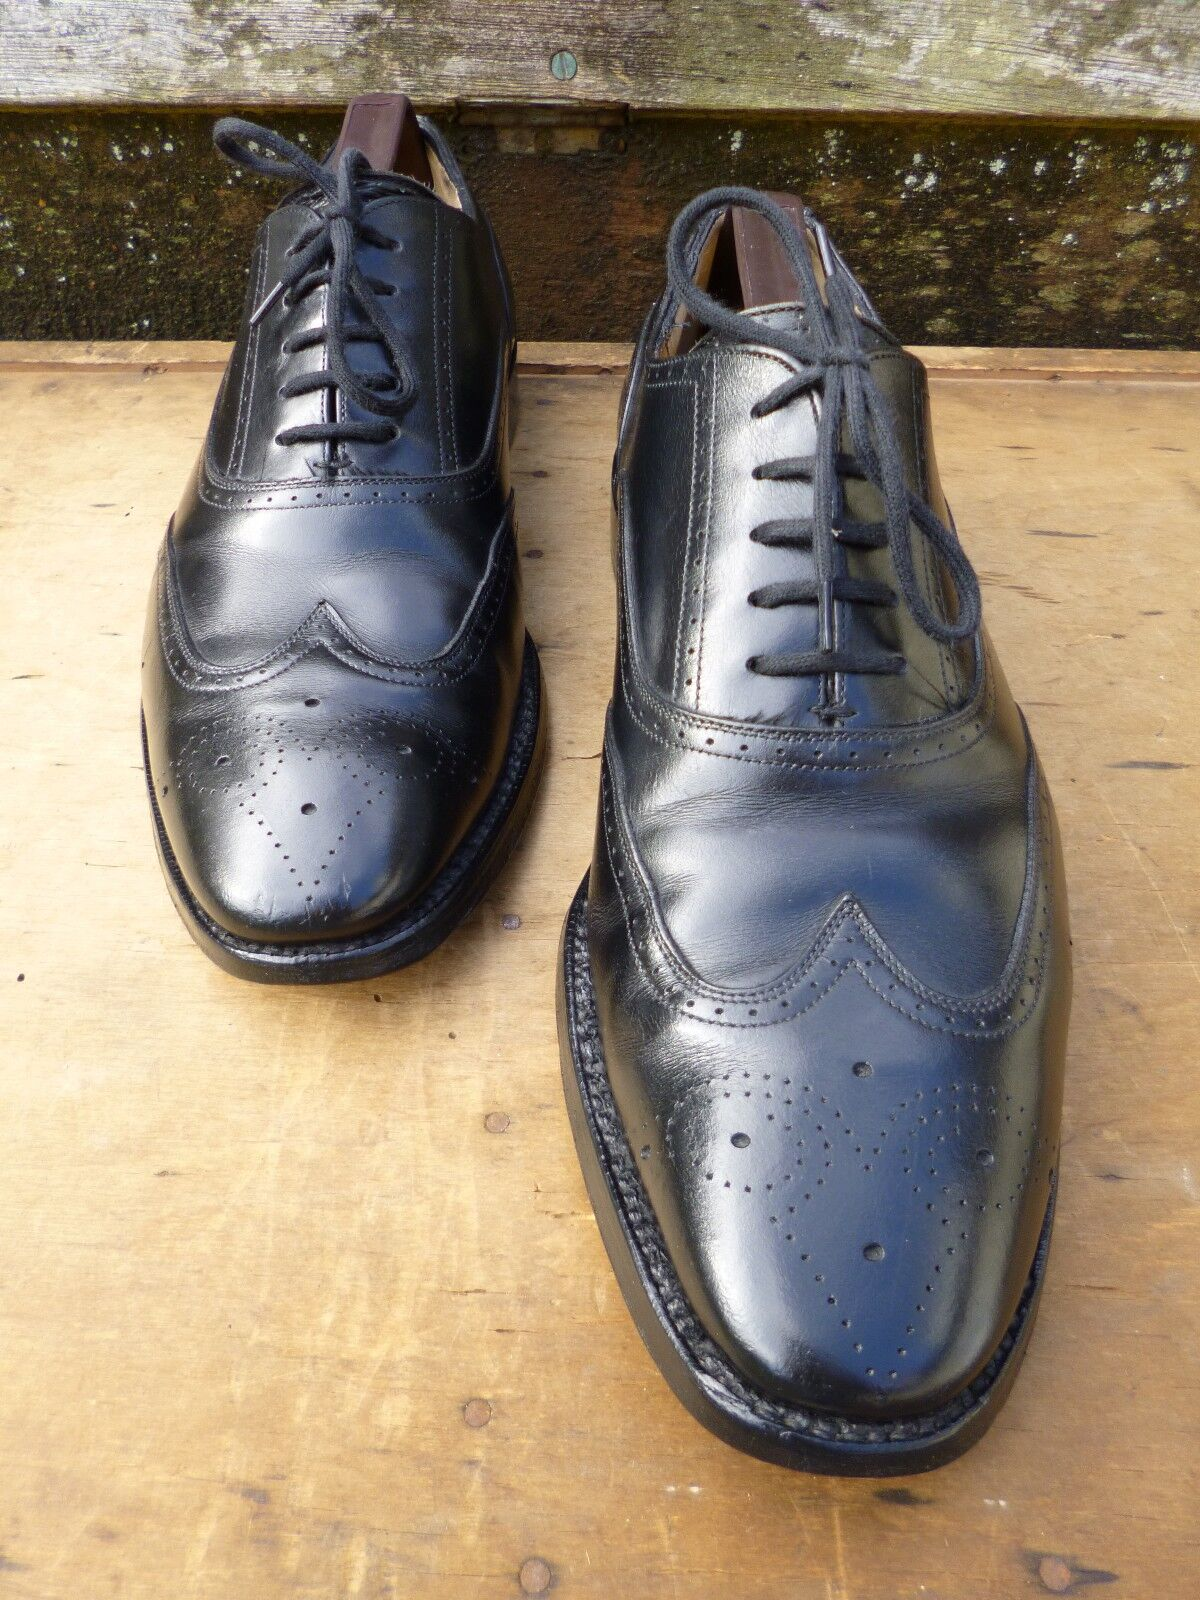 CHURCH BROGUES – BLACK BLACK BLACK – UK 7 – WALTON - VERY GOOD CONDITION 0fcecf